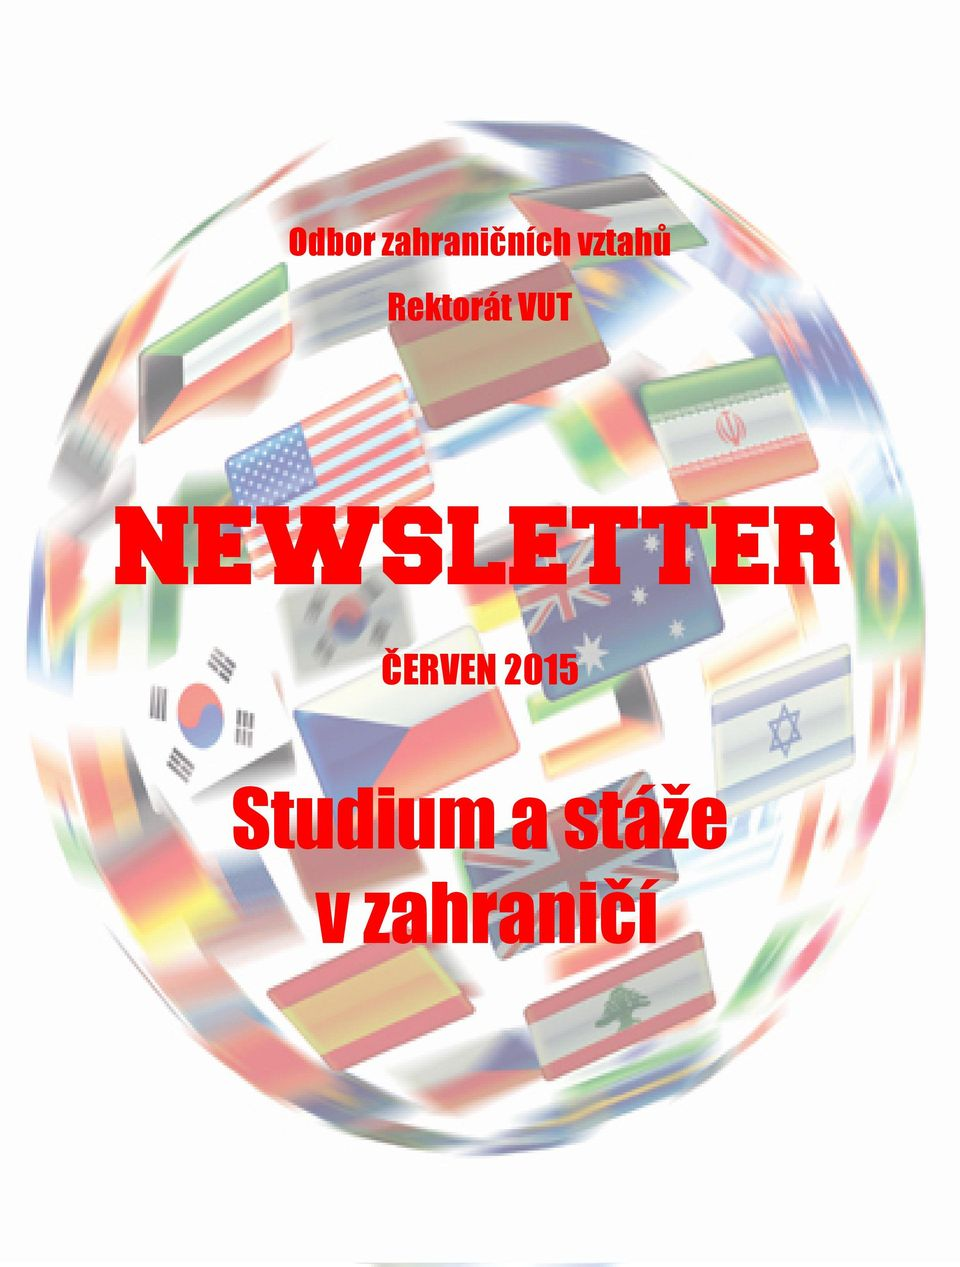 NEWSLETTER ČERVEN 2015